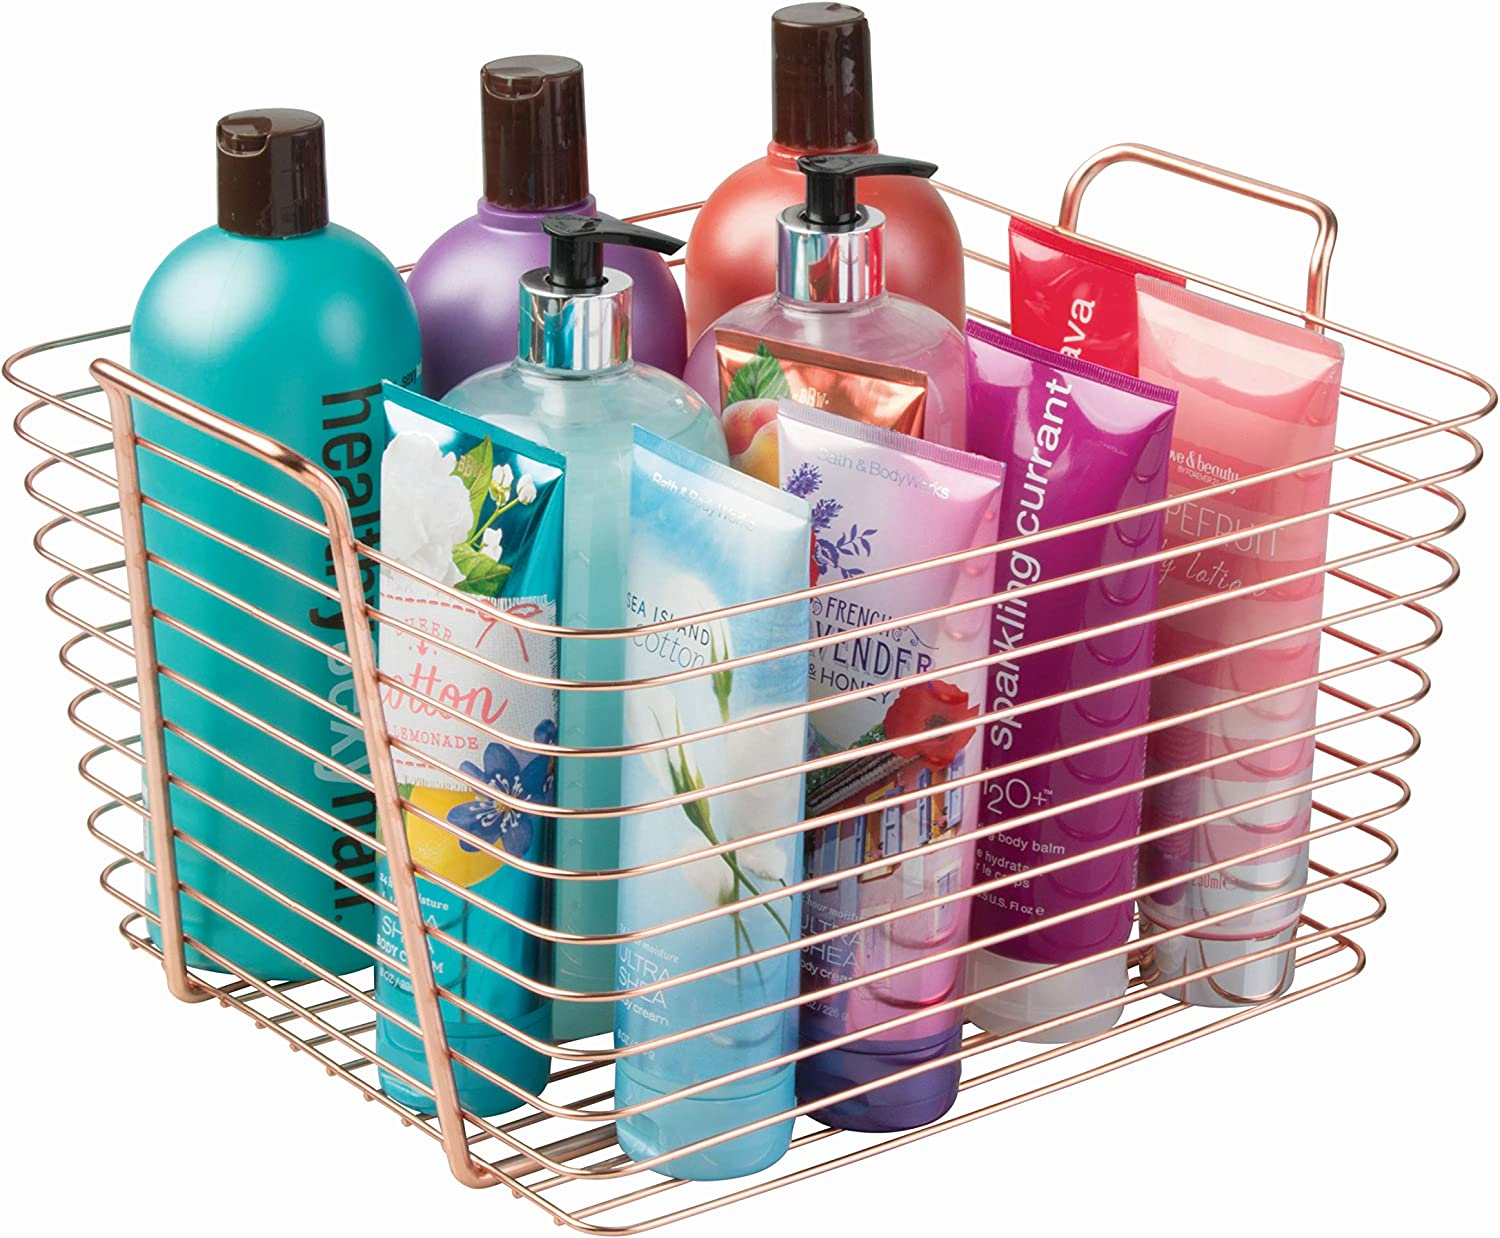 iDesign Classico Storage Basket, Large Wire Basket for Toiletries, Kitchen Utensils, Toys and More, Made of Metal, Copper Coloured